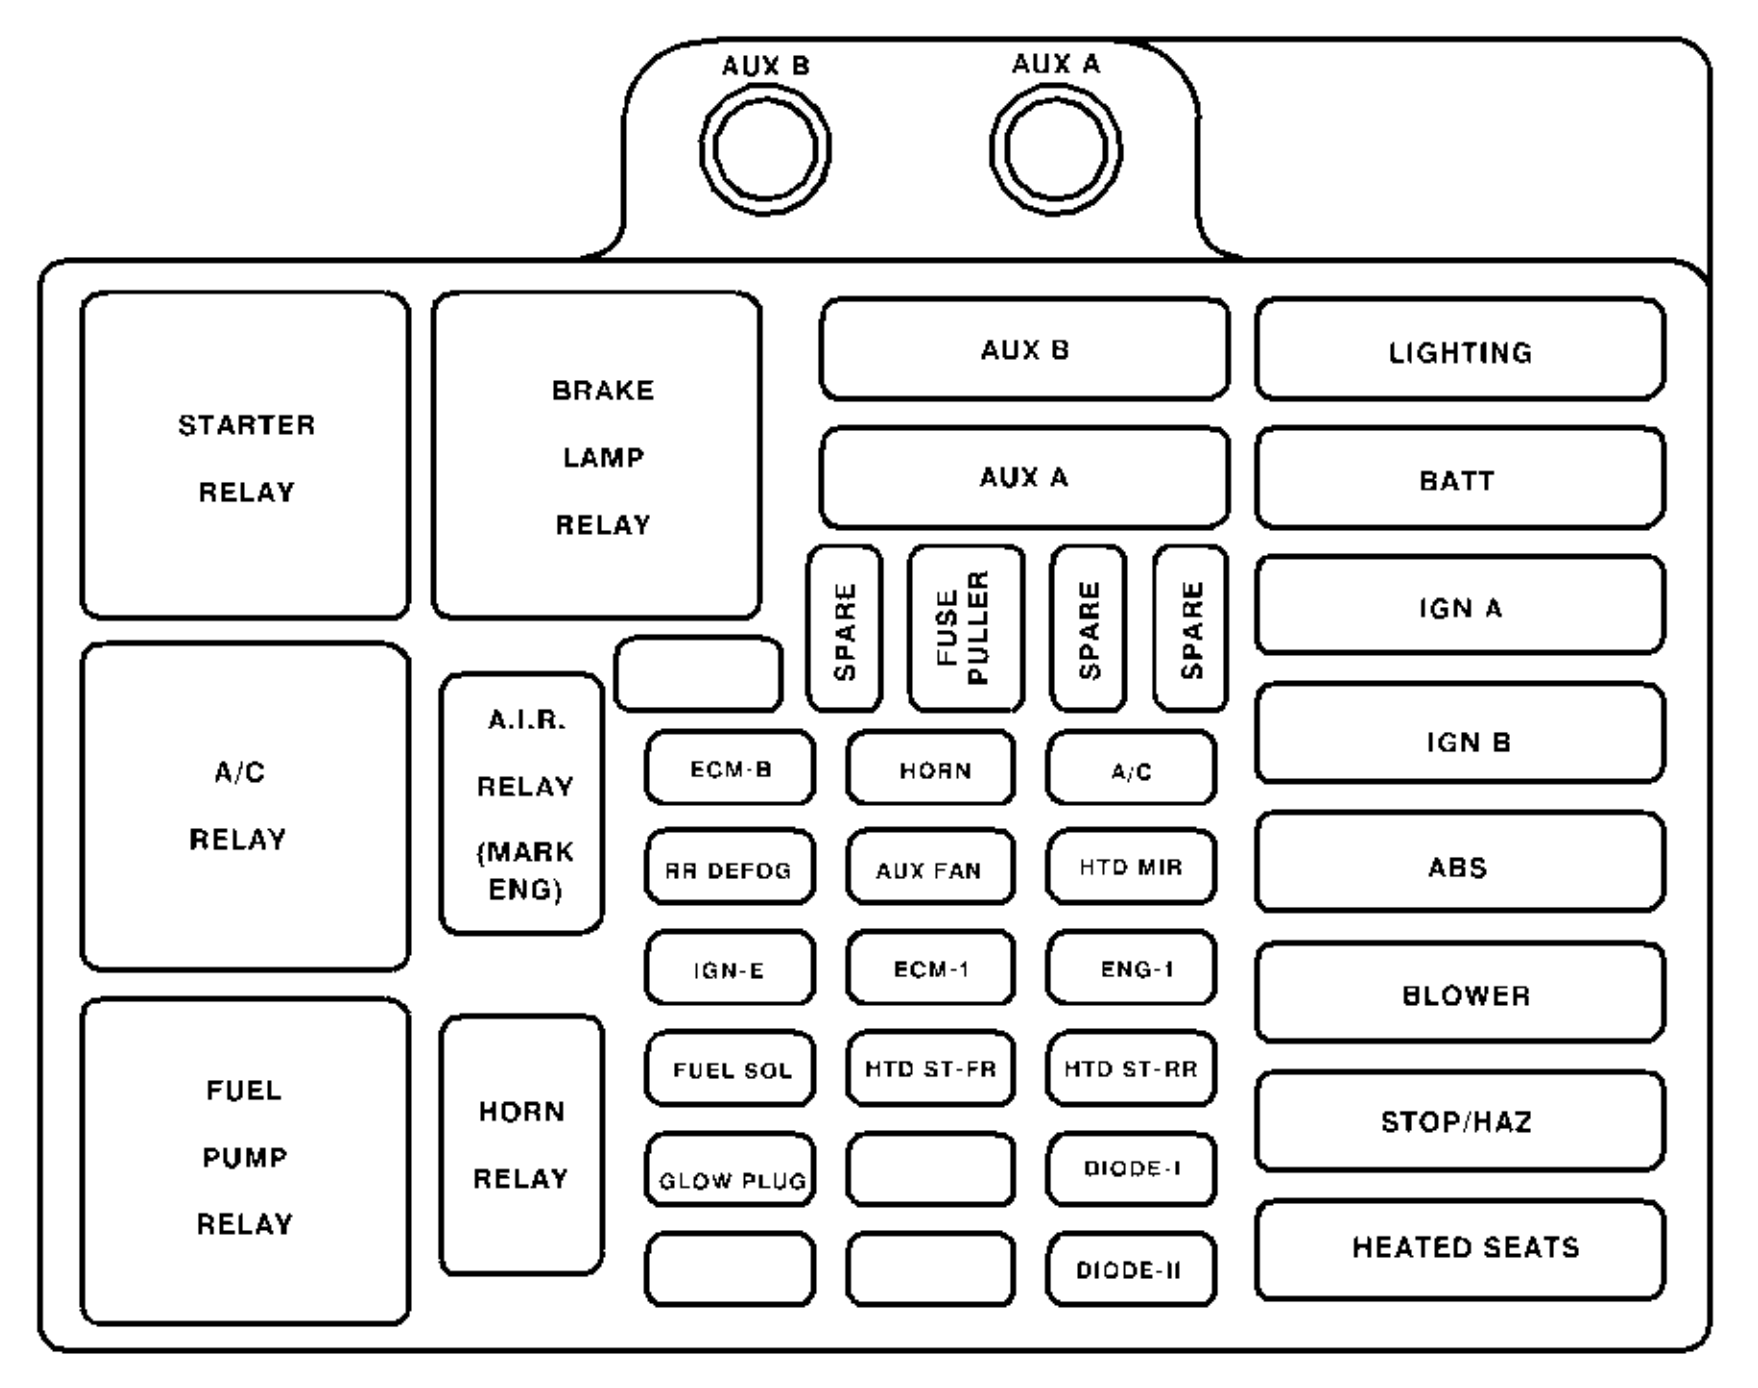 Chevrolet Tahoe 1999 Fuse Box Diagram Auto Genius Ford F 150 4x4